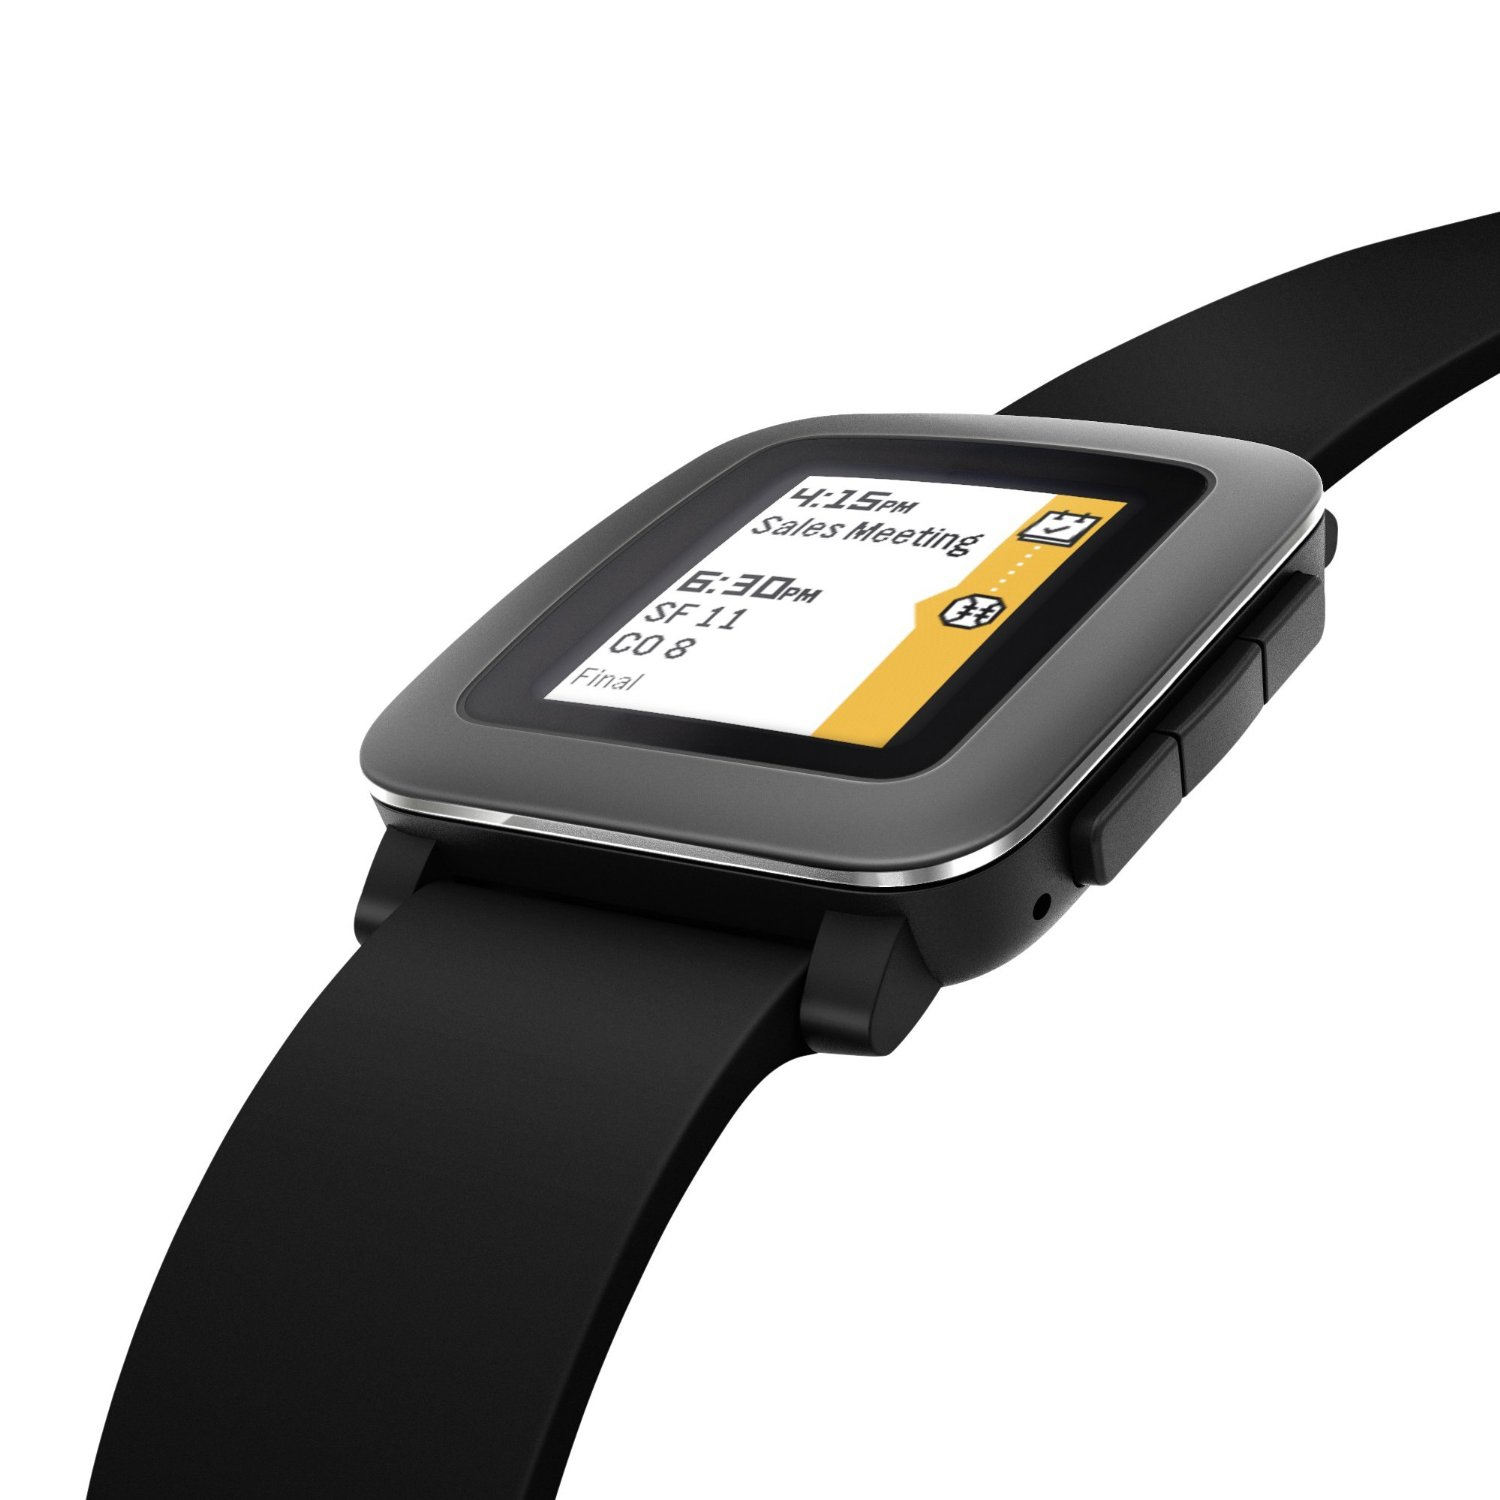 Fitness pebble time smartwatchreview for Pebble watches